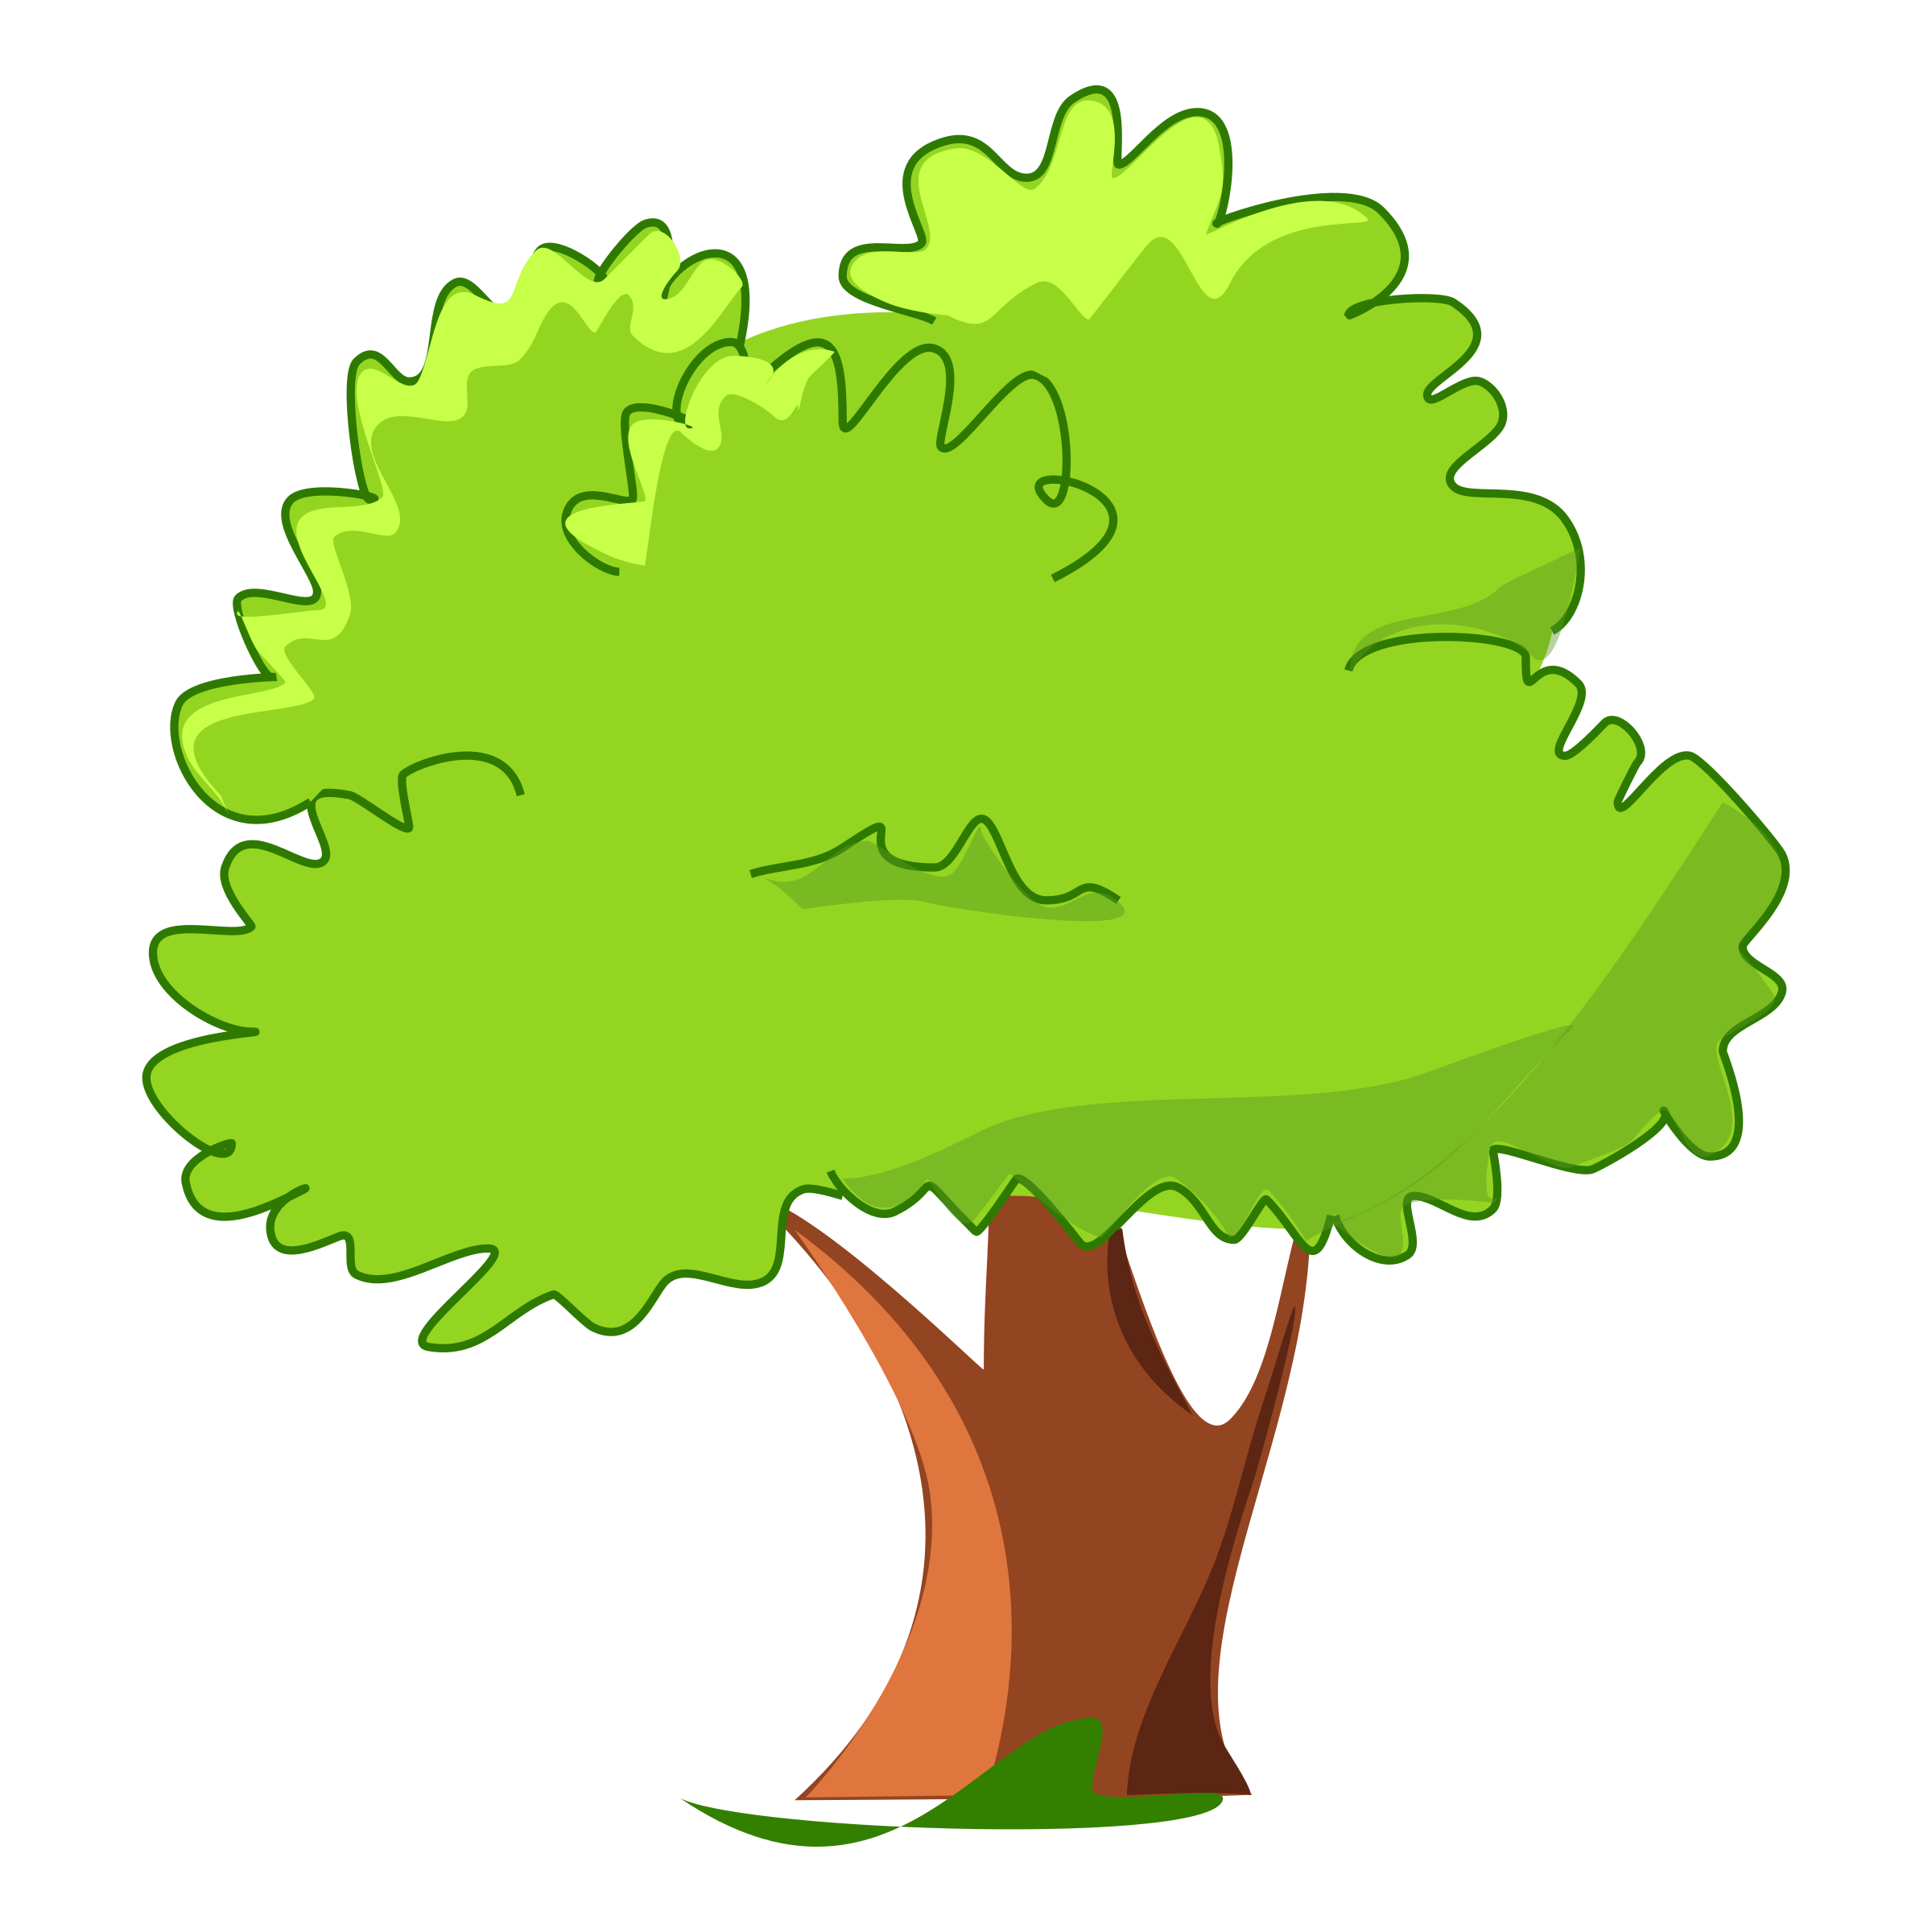 Cartoon tree pictures clipart graphic library download Tree Cartoon Png | Free download best Tree Cartoon Png on ClipArtMag.com graphic library download